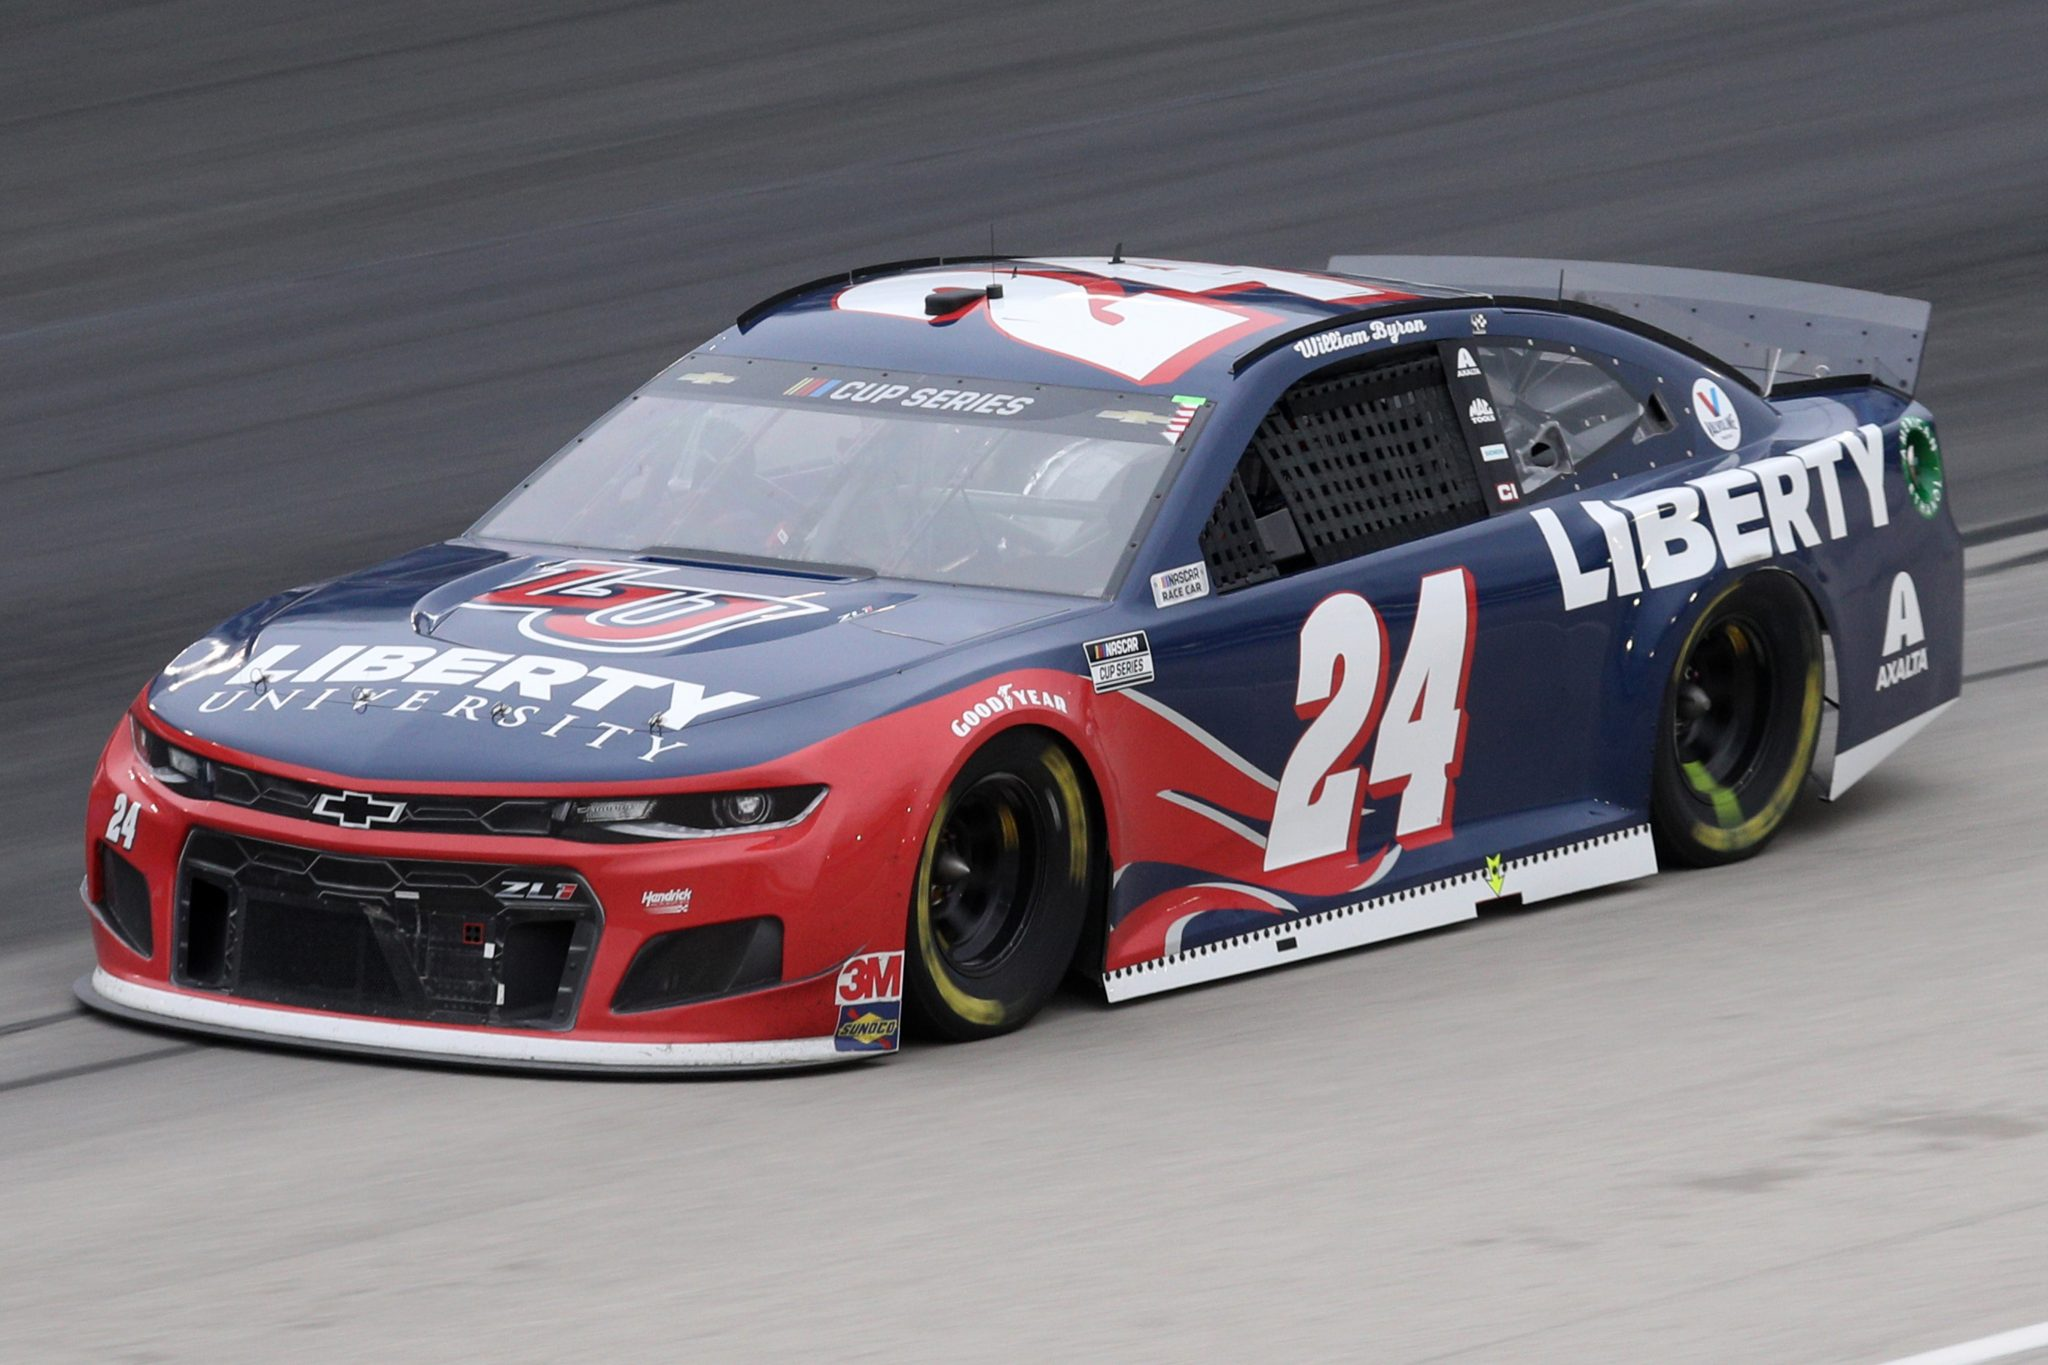 FORT WORTH, TEXAS - OCTOBER 28: William Byron, driver of the #24 Liberty University Chevrolet, drives during the NASCAR Cup Series Autotrader EchoPark Automotive 500 at Texas Motor Speedway on October 28, 2020 in Fort Worth, Texas. (Photo by Chris Graythen/Getty Images) | Getty Images